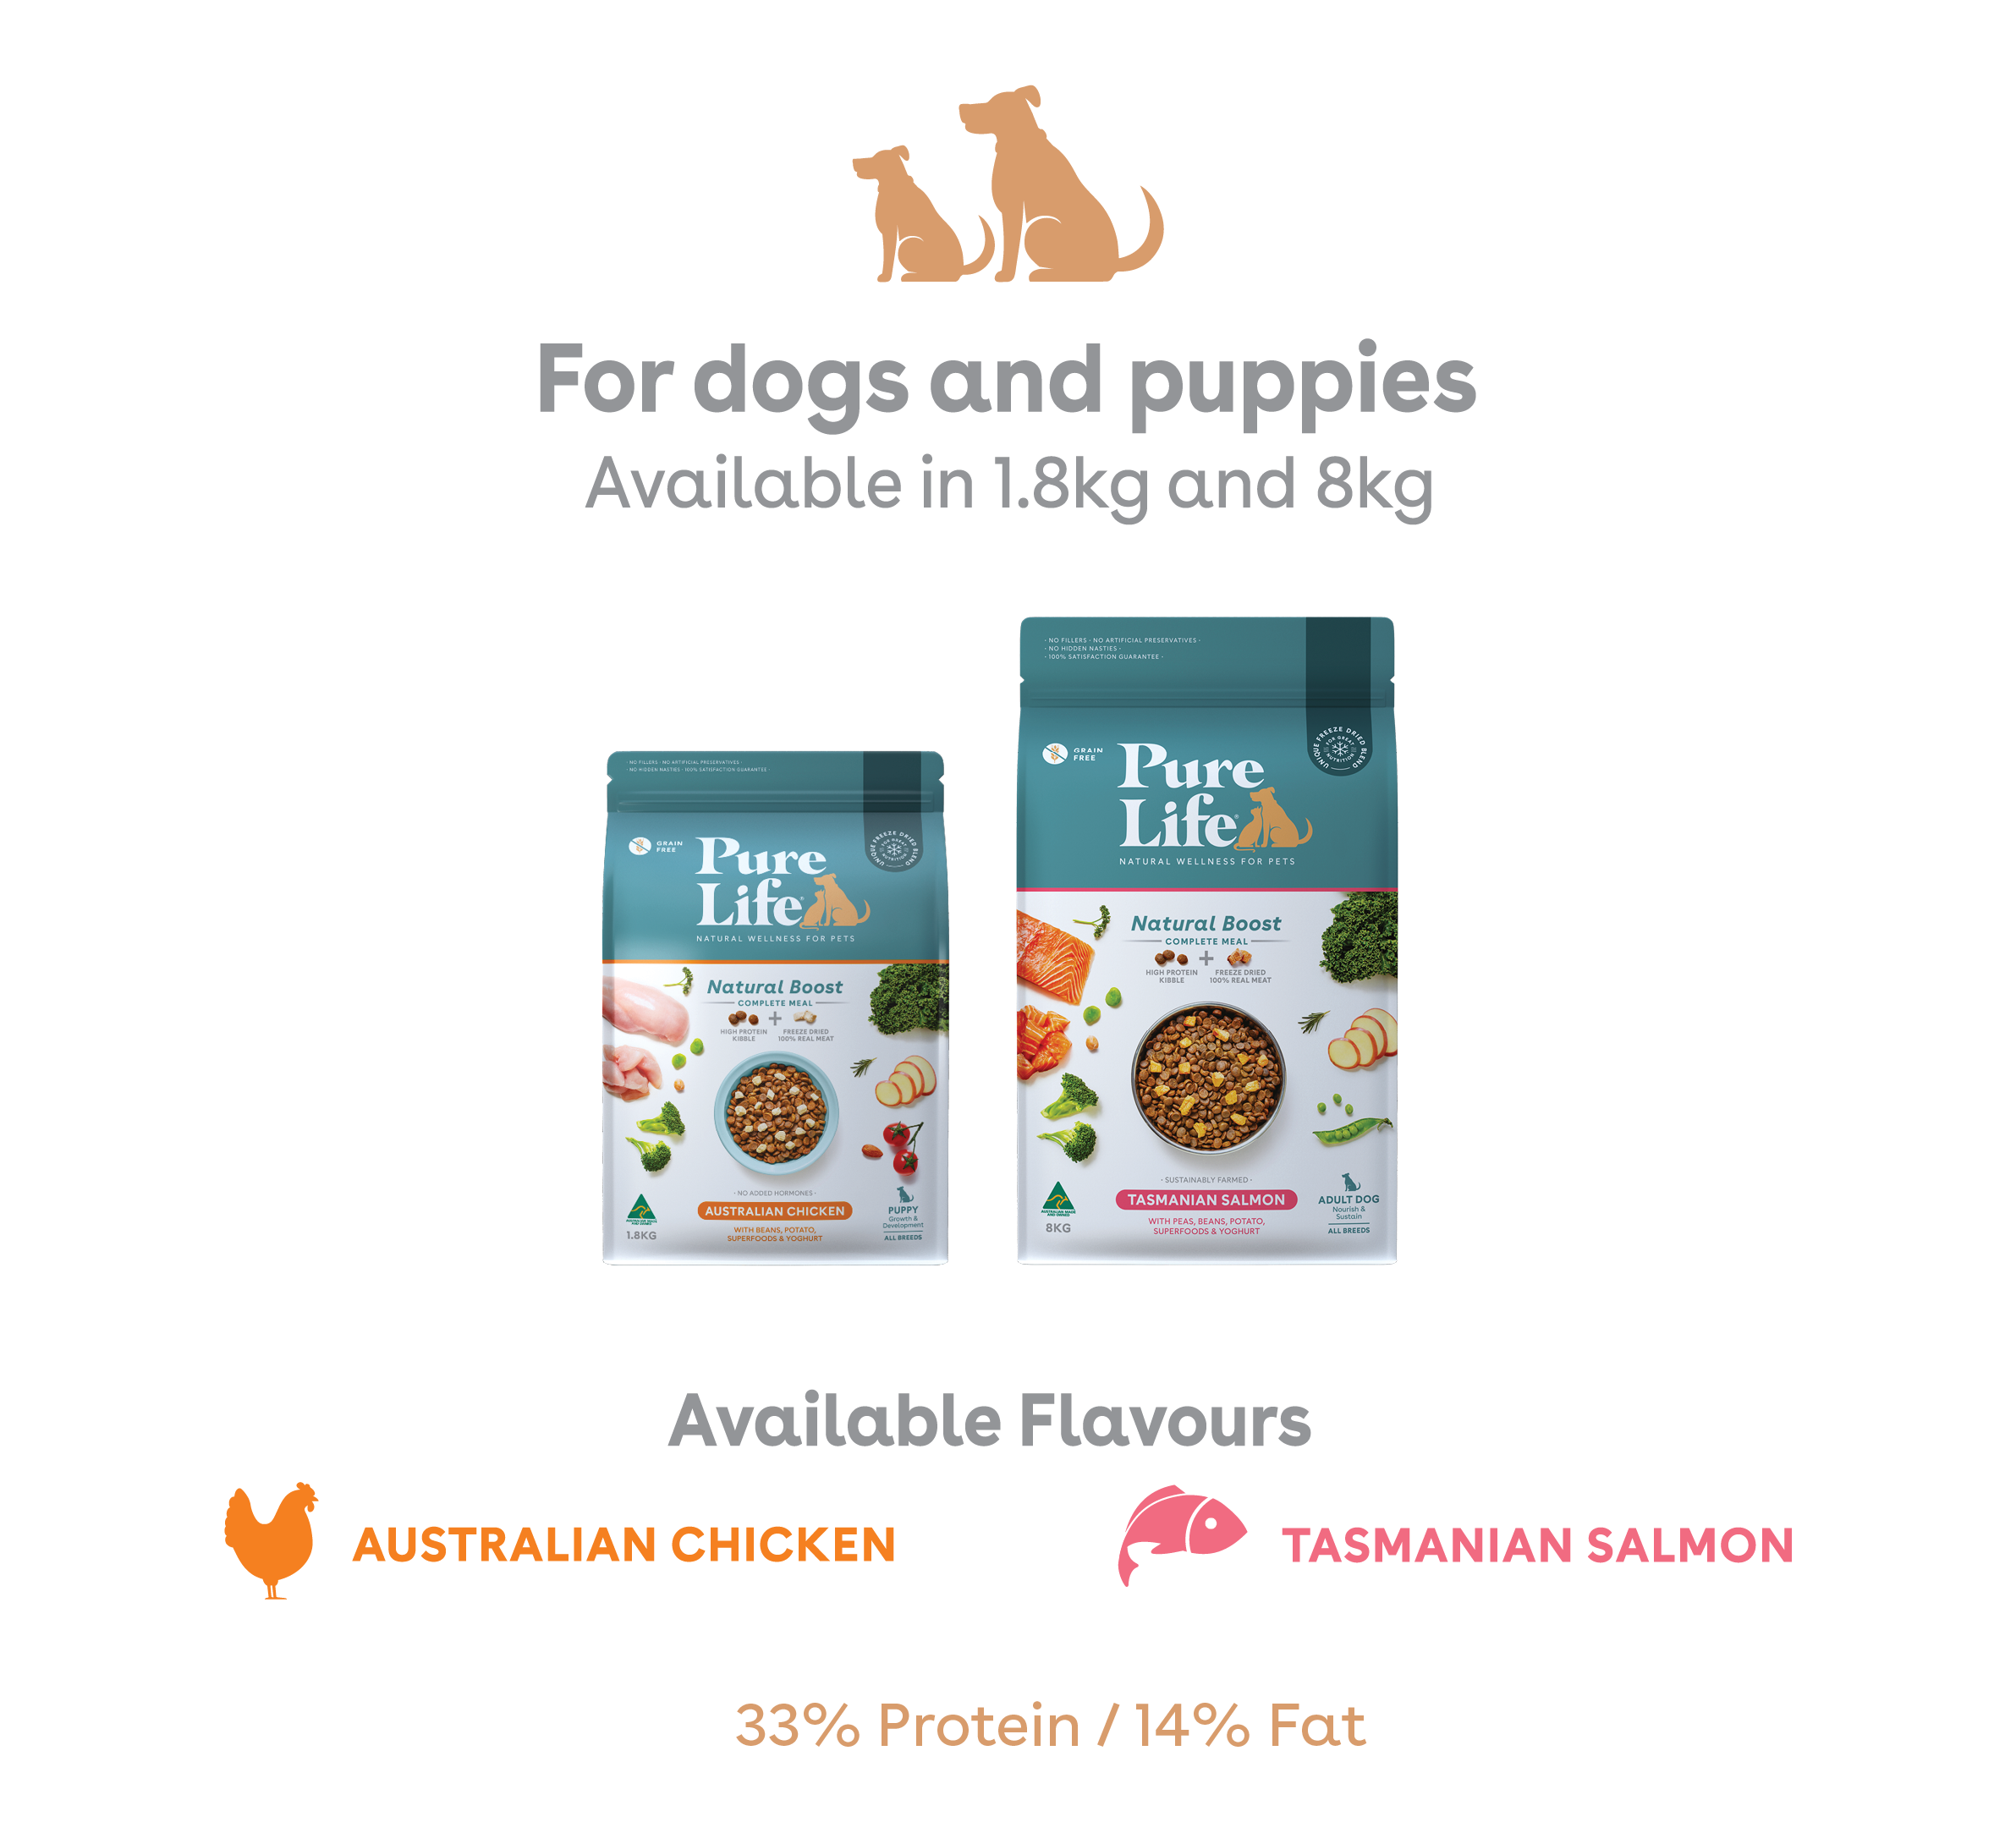 Pure Life For dogs and puppies